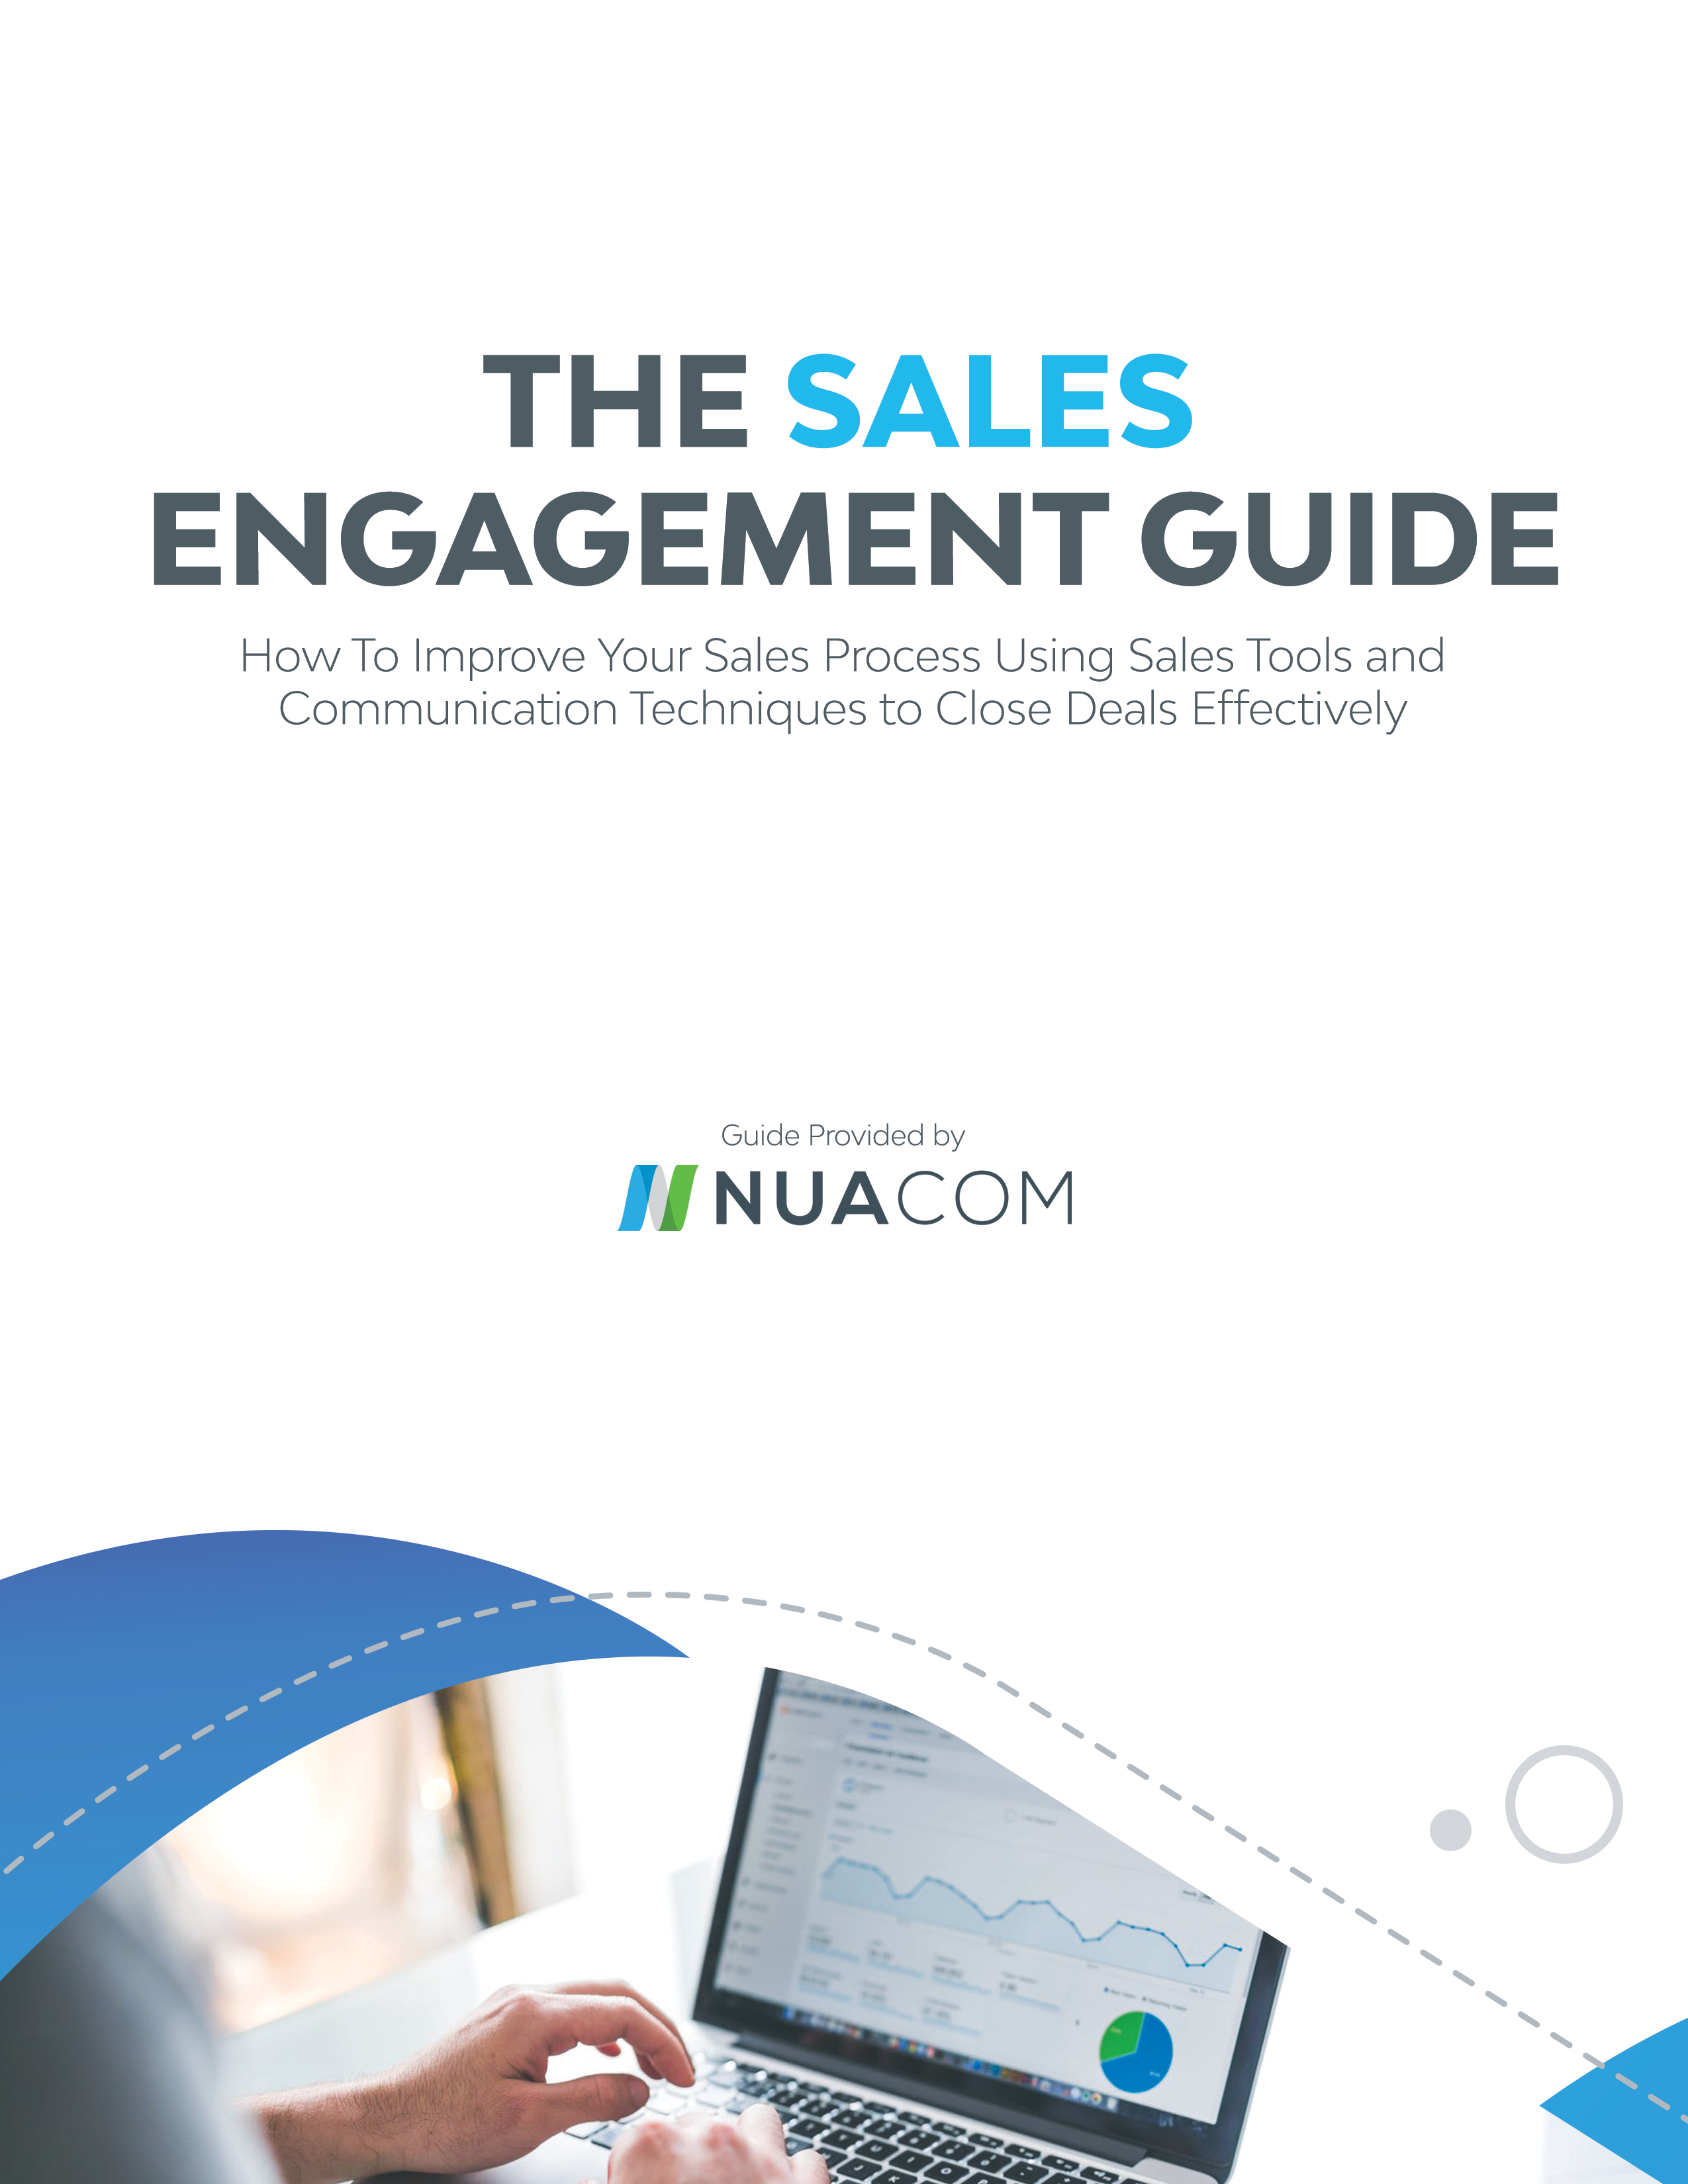 Sales Engagement Guide by NUACOM